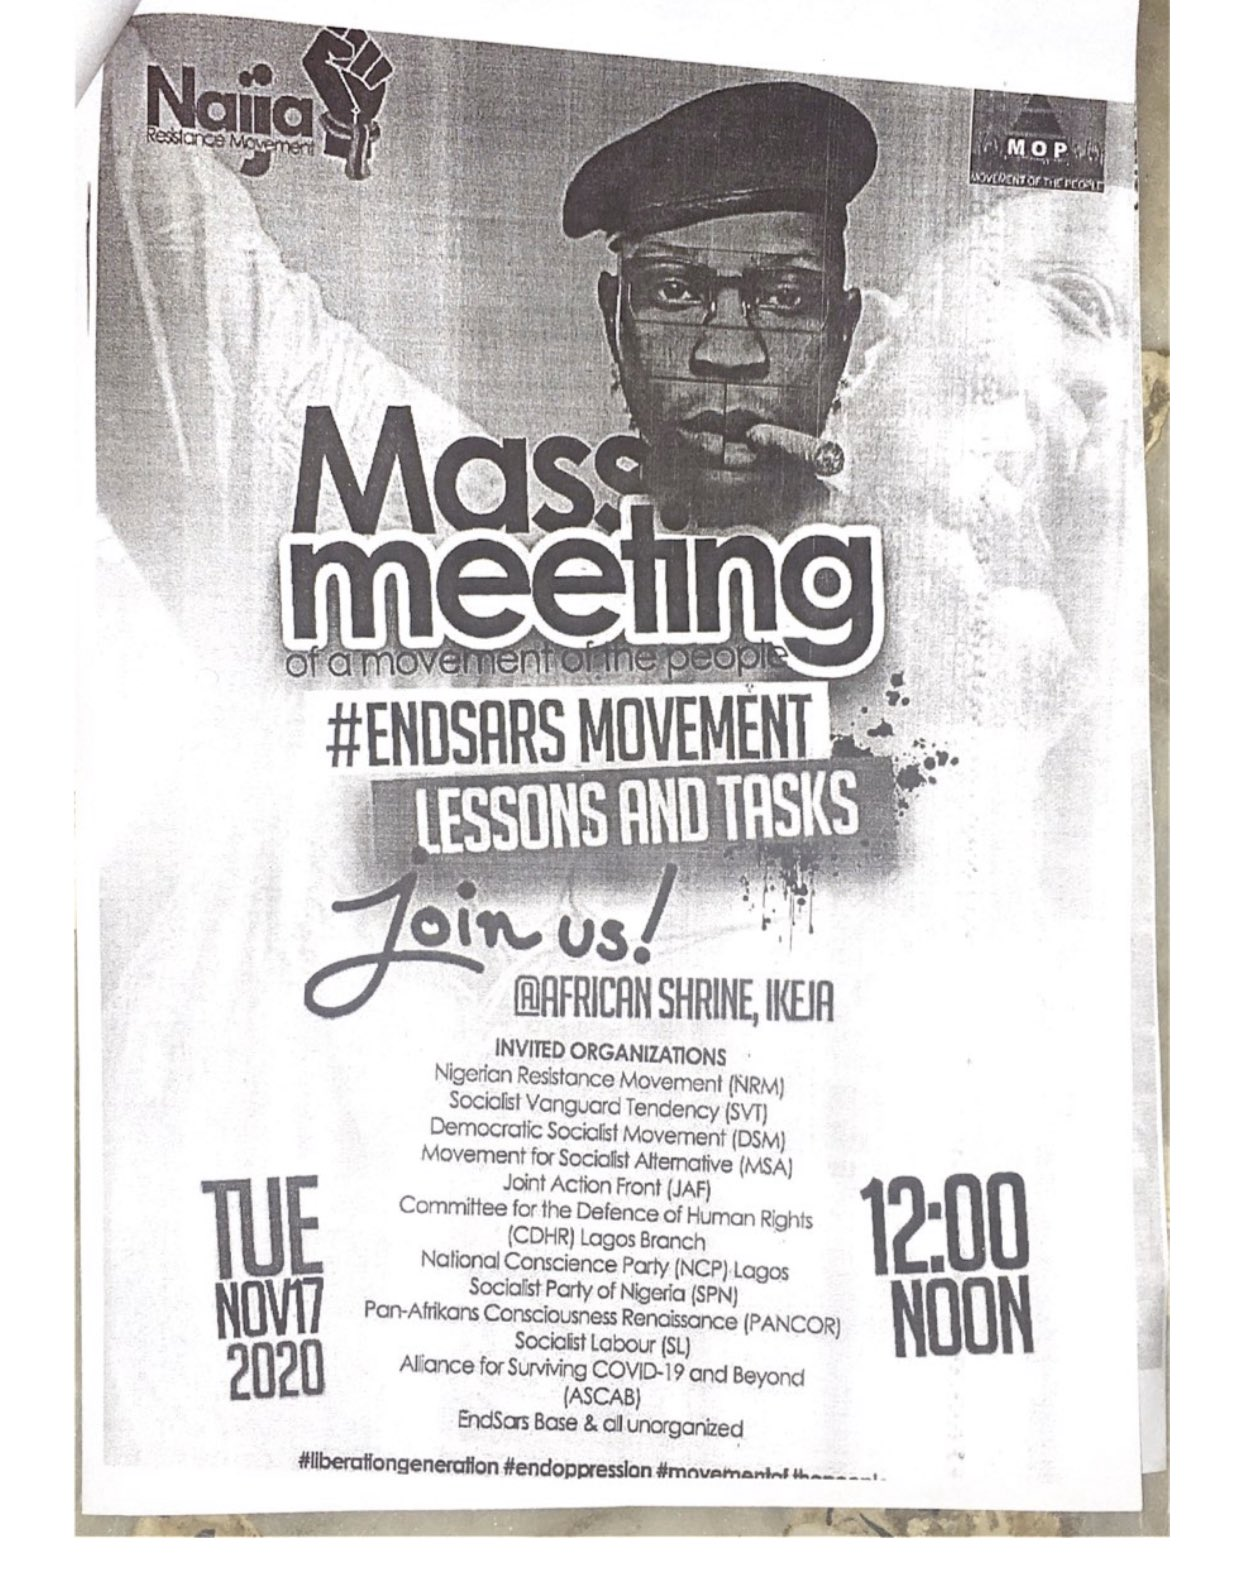 ImageSeun Anikulapo-Kuti shared flyers announcing a meeting on the lessons from EndSARS protests